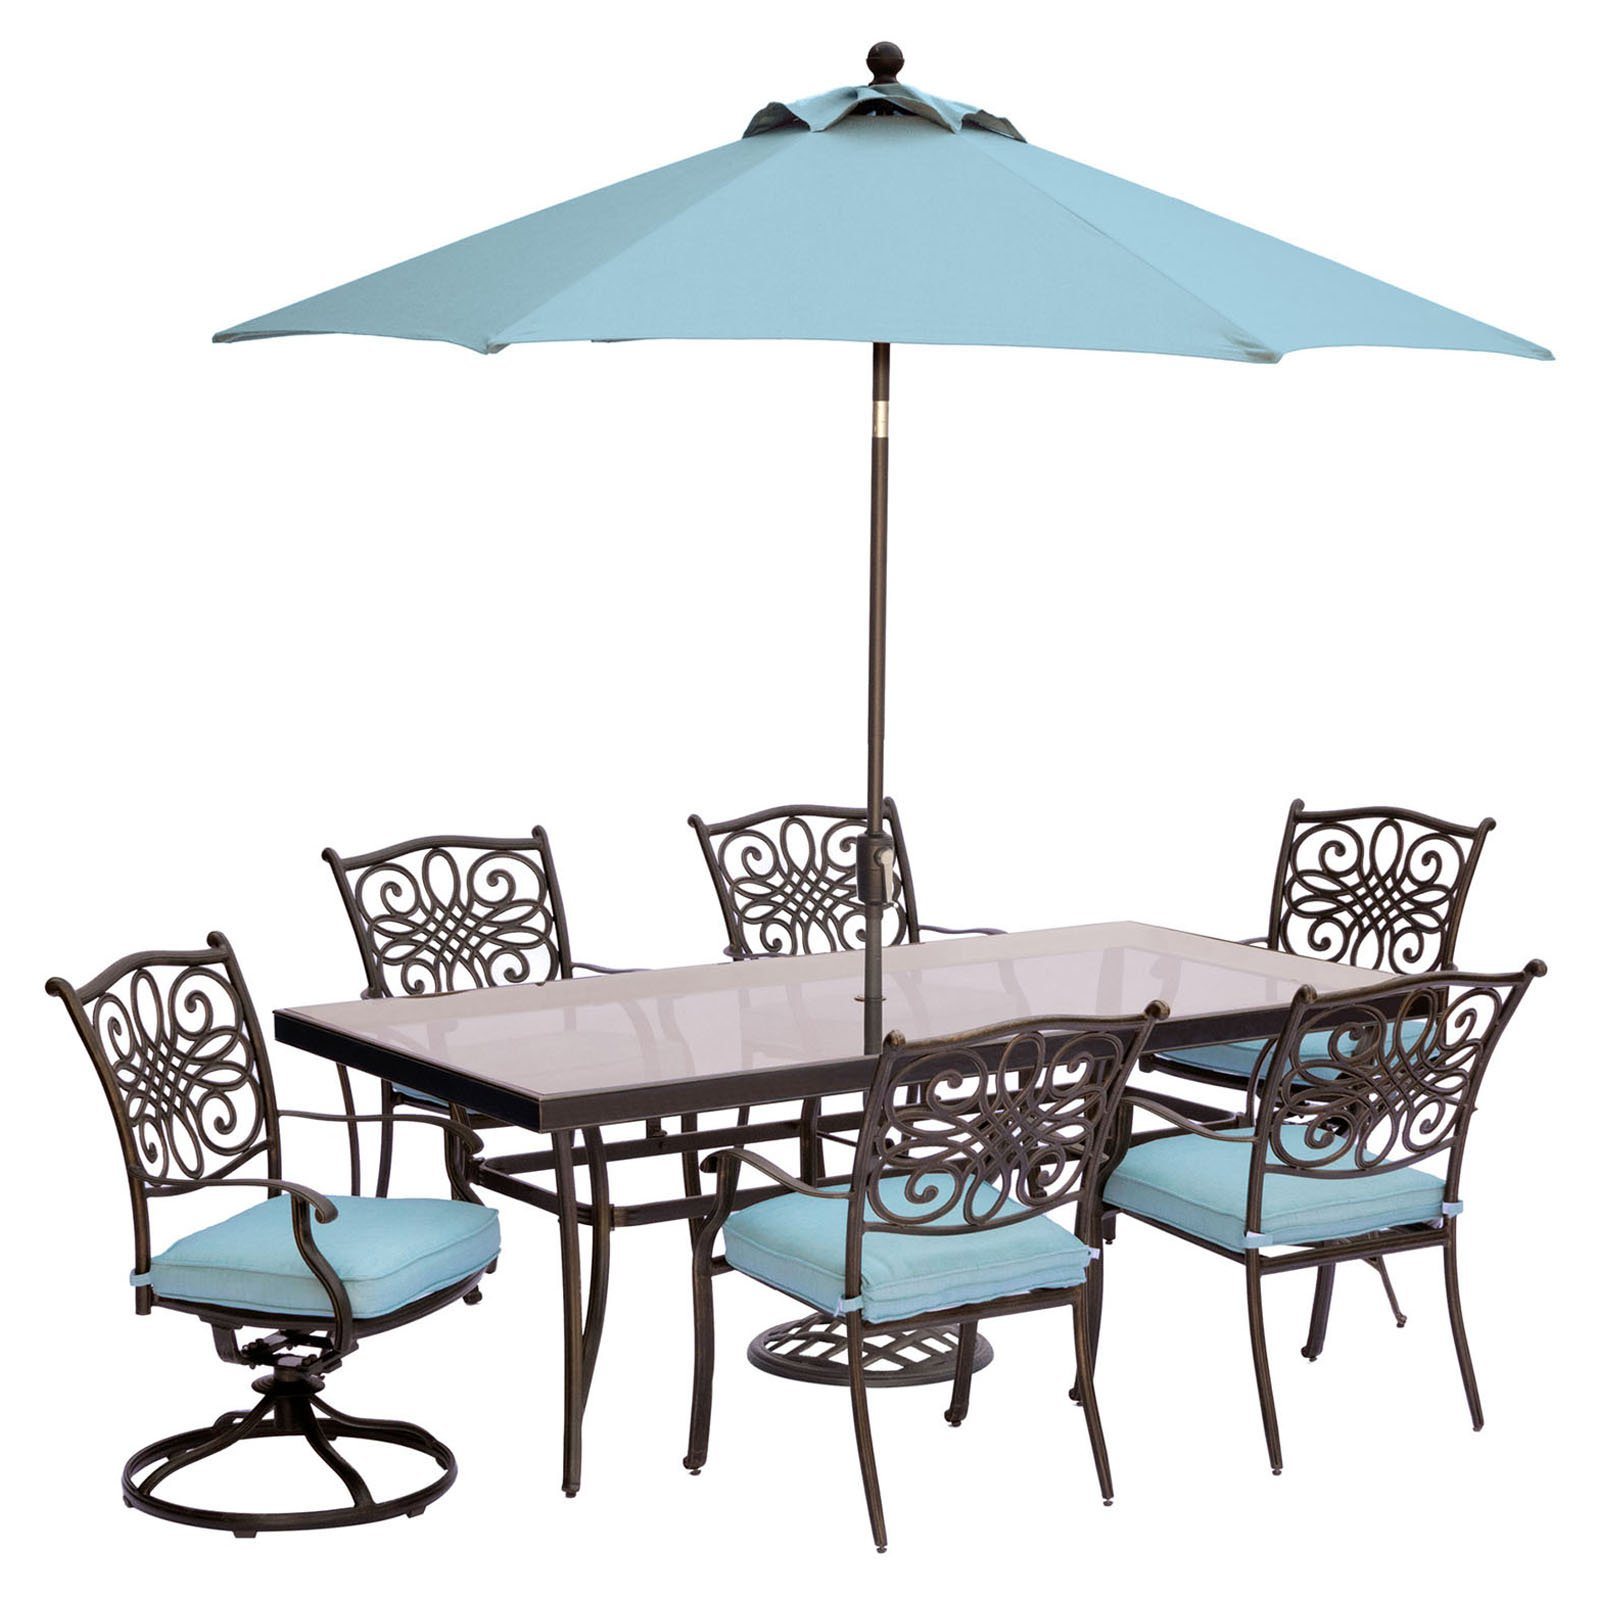 "Hanover Outdoor Traditions 7-Piece Dining Set with with 42"" x 84"" Glass-Top Table, 4 Stationary Chairs, 2 Swivel Rockers and Umbrella w/Stand"